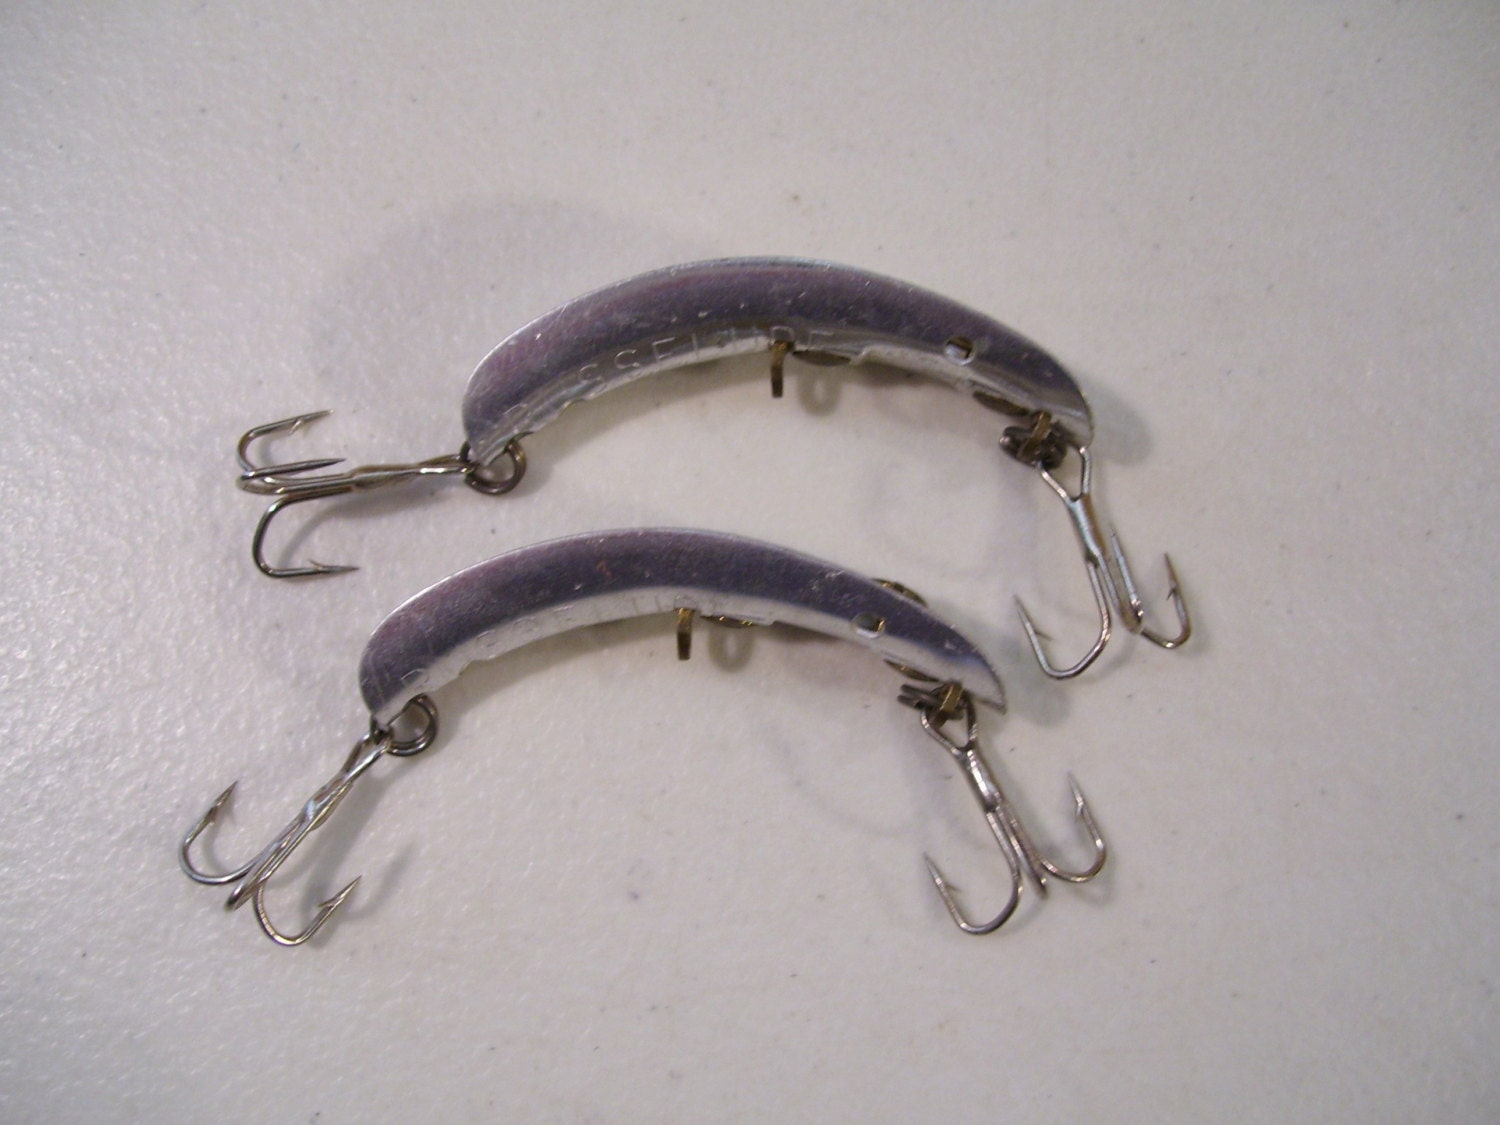 Lot of 2 antique russelure fishing lures no 2 1950 39 s for Antique fishing lures prices